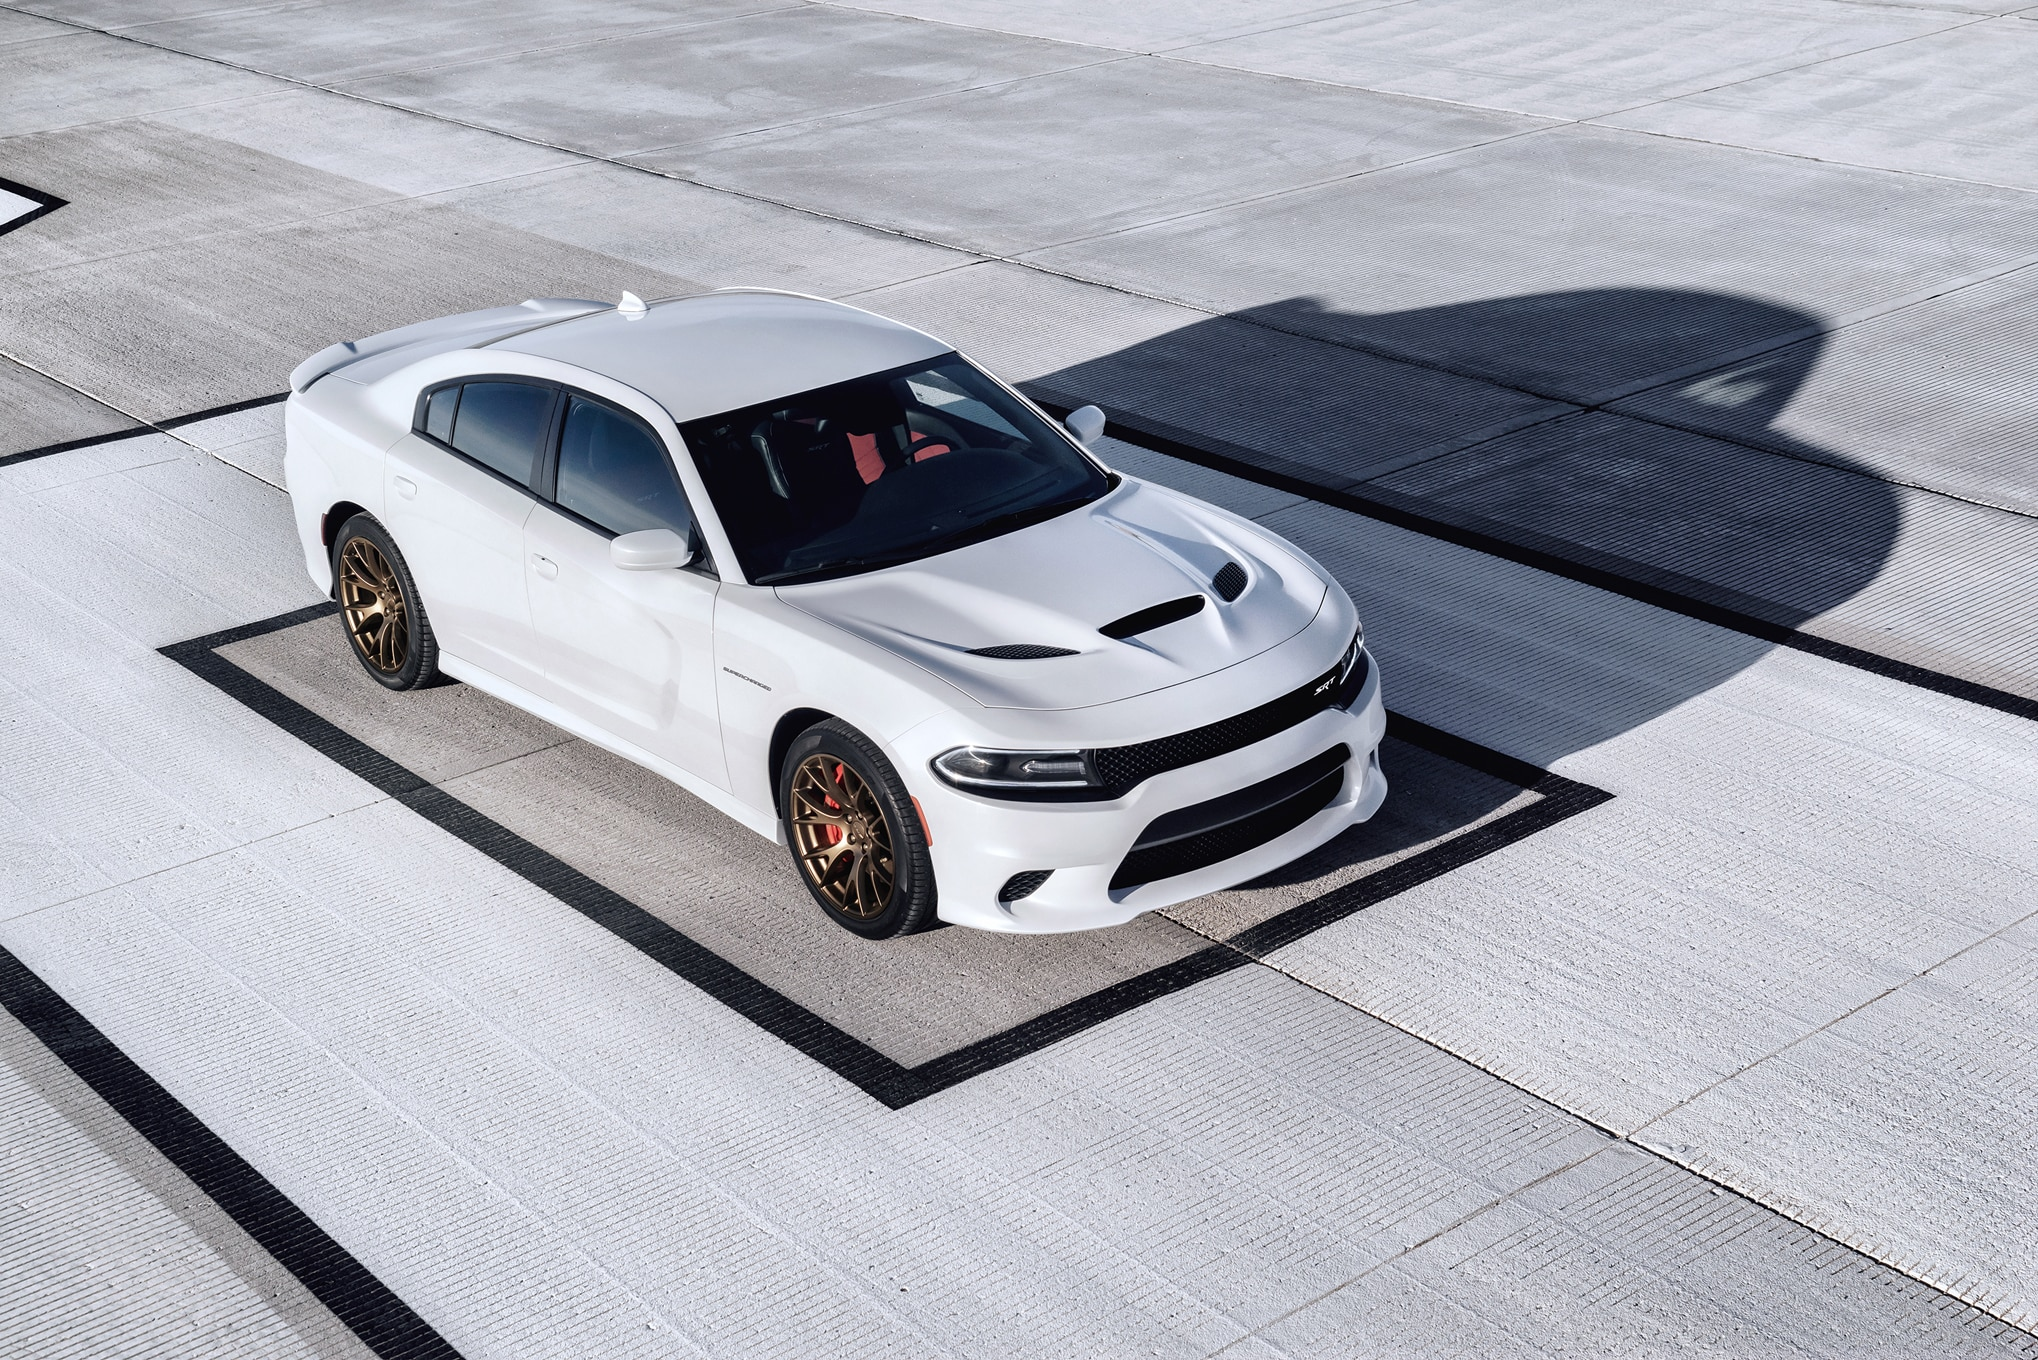 2015 dodge charger srt hellcat top view front three quarter - 2015 Dodge Charger Srt Hellcat